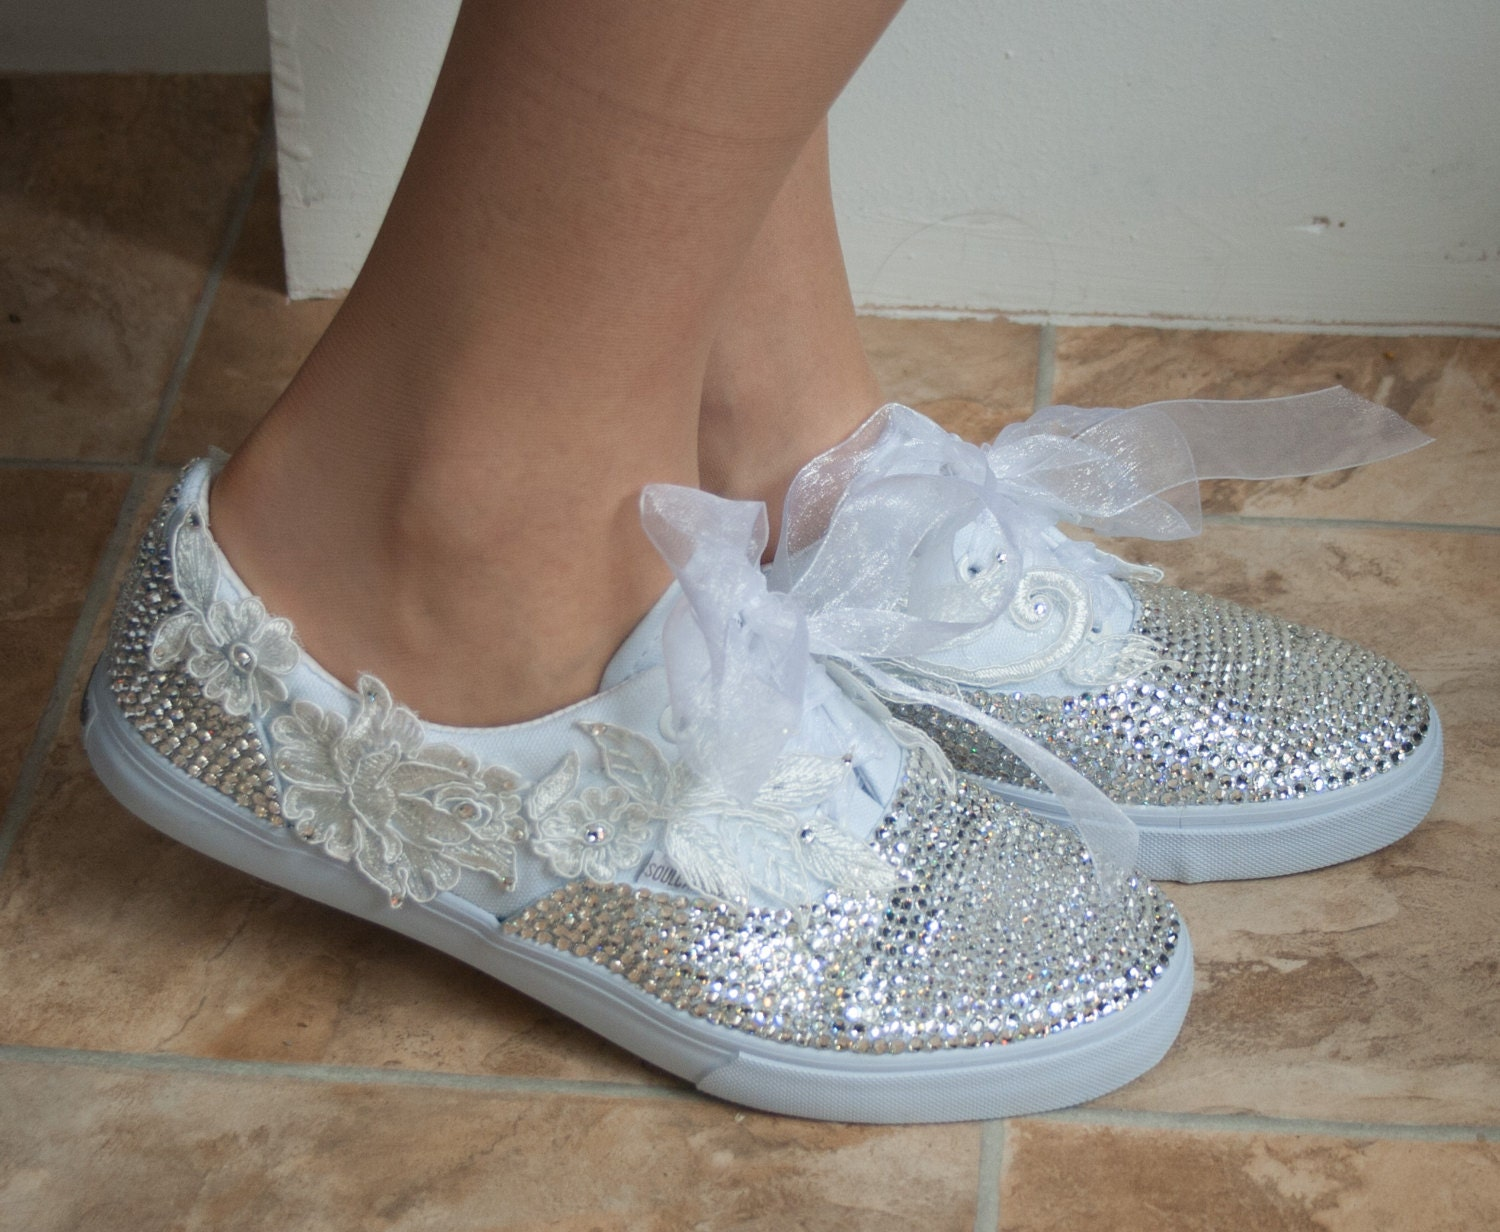 wedding converse style trainers with crystals and lace